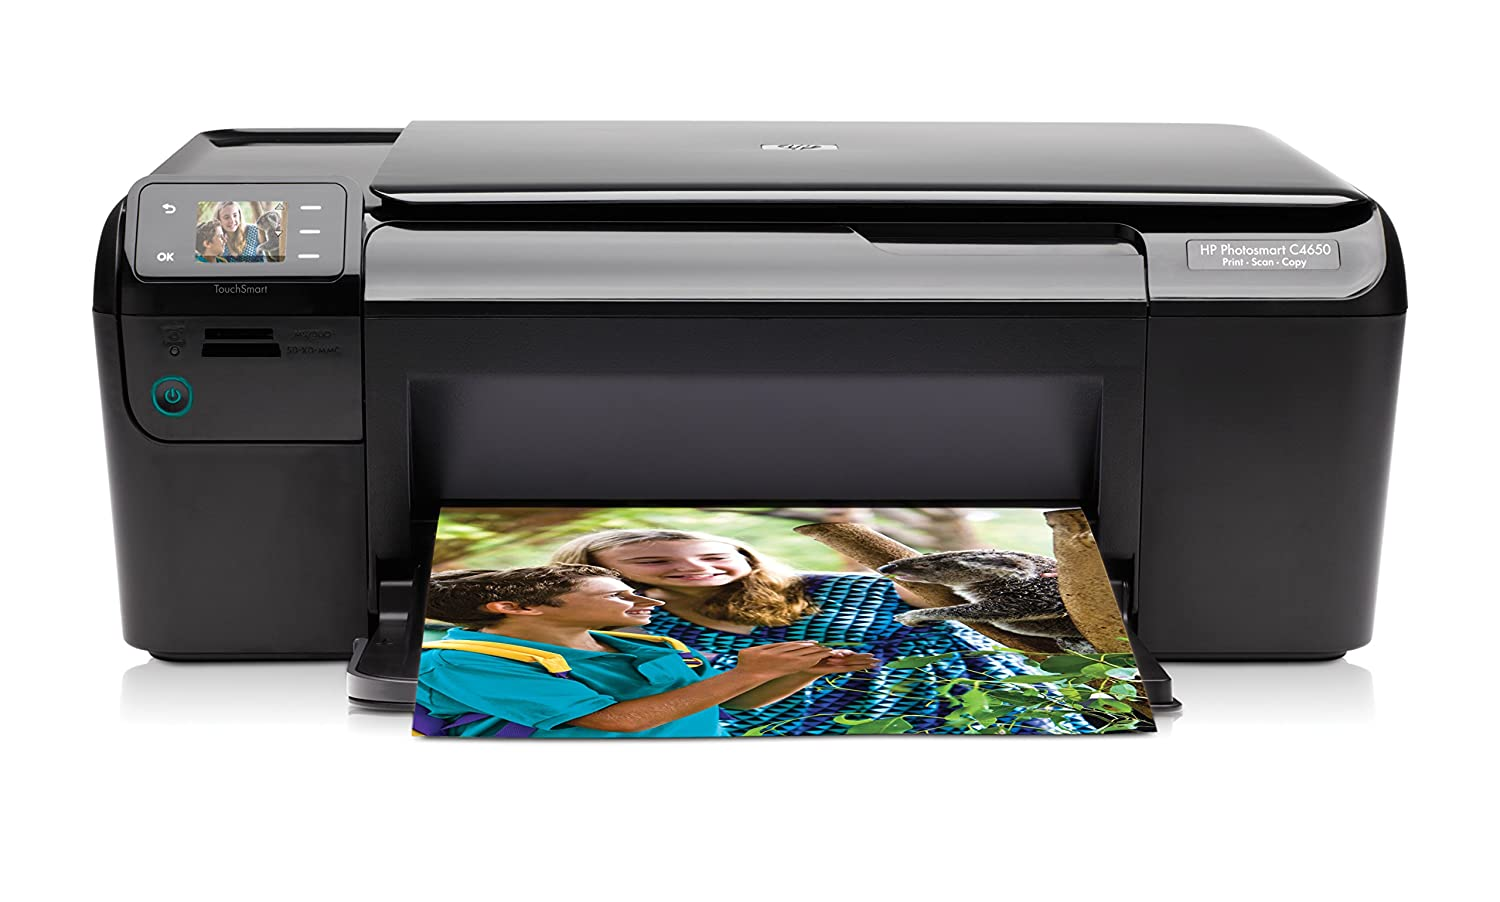 Amazon HP Photosmart C4650 All In One Printer Electronics